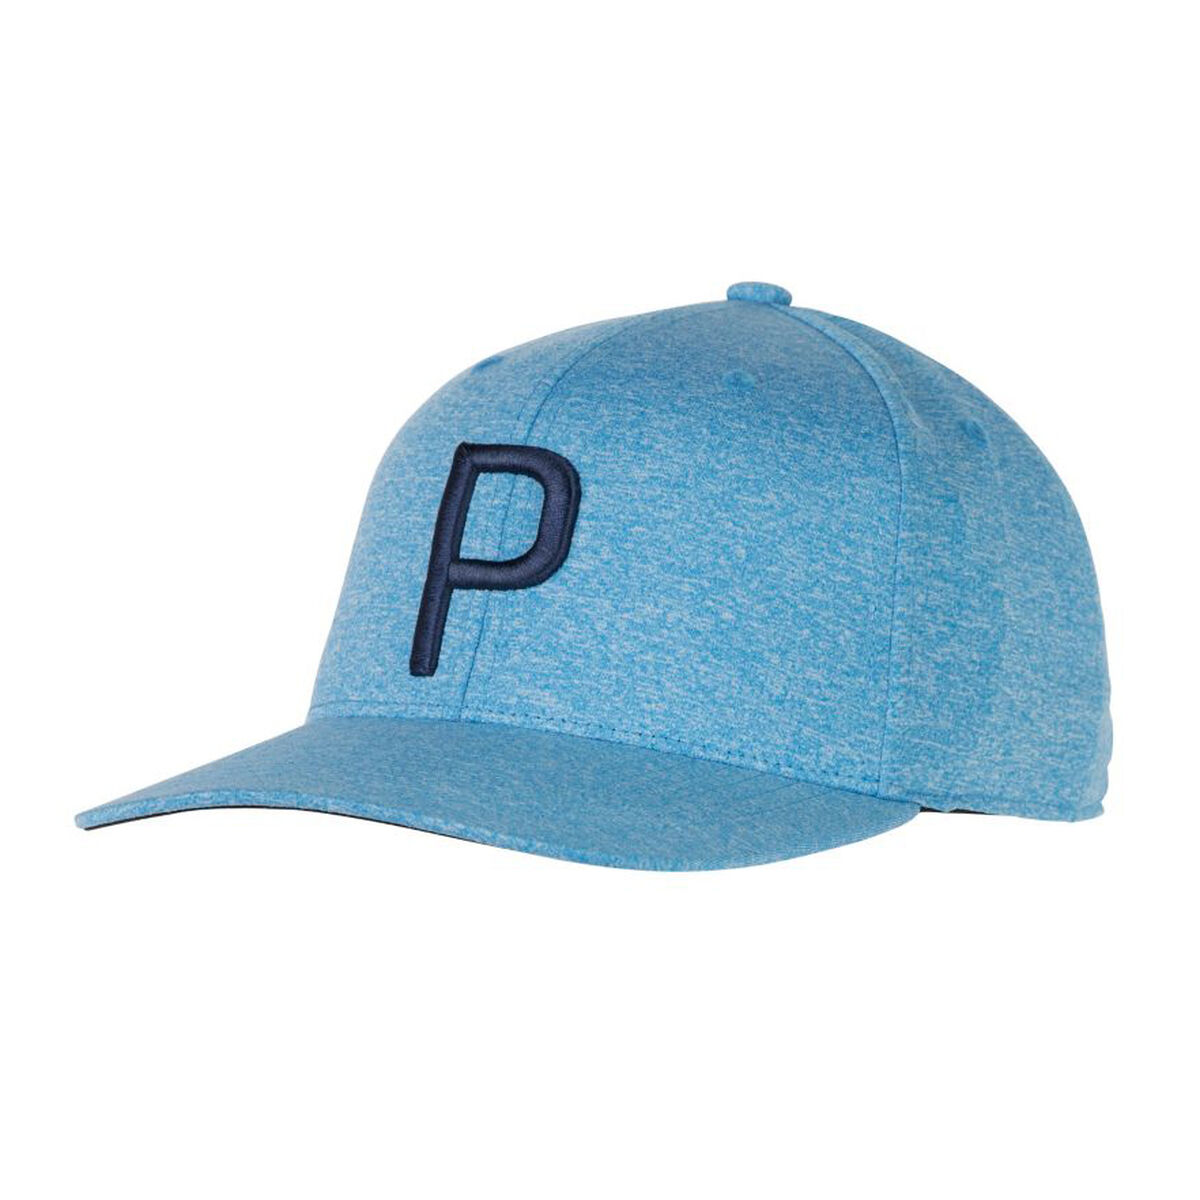 Images. Youth P Snapback Hat 304b39e84f4